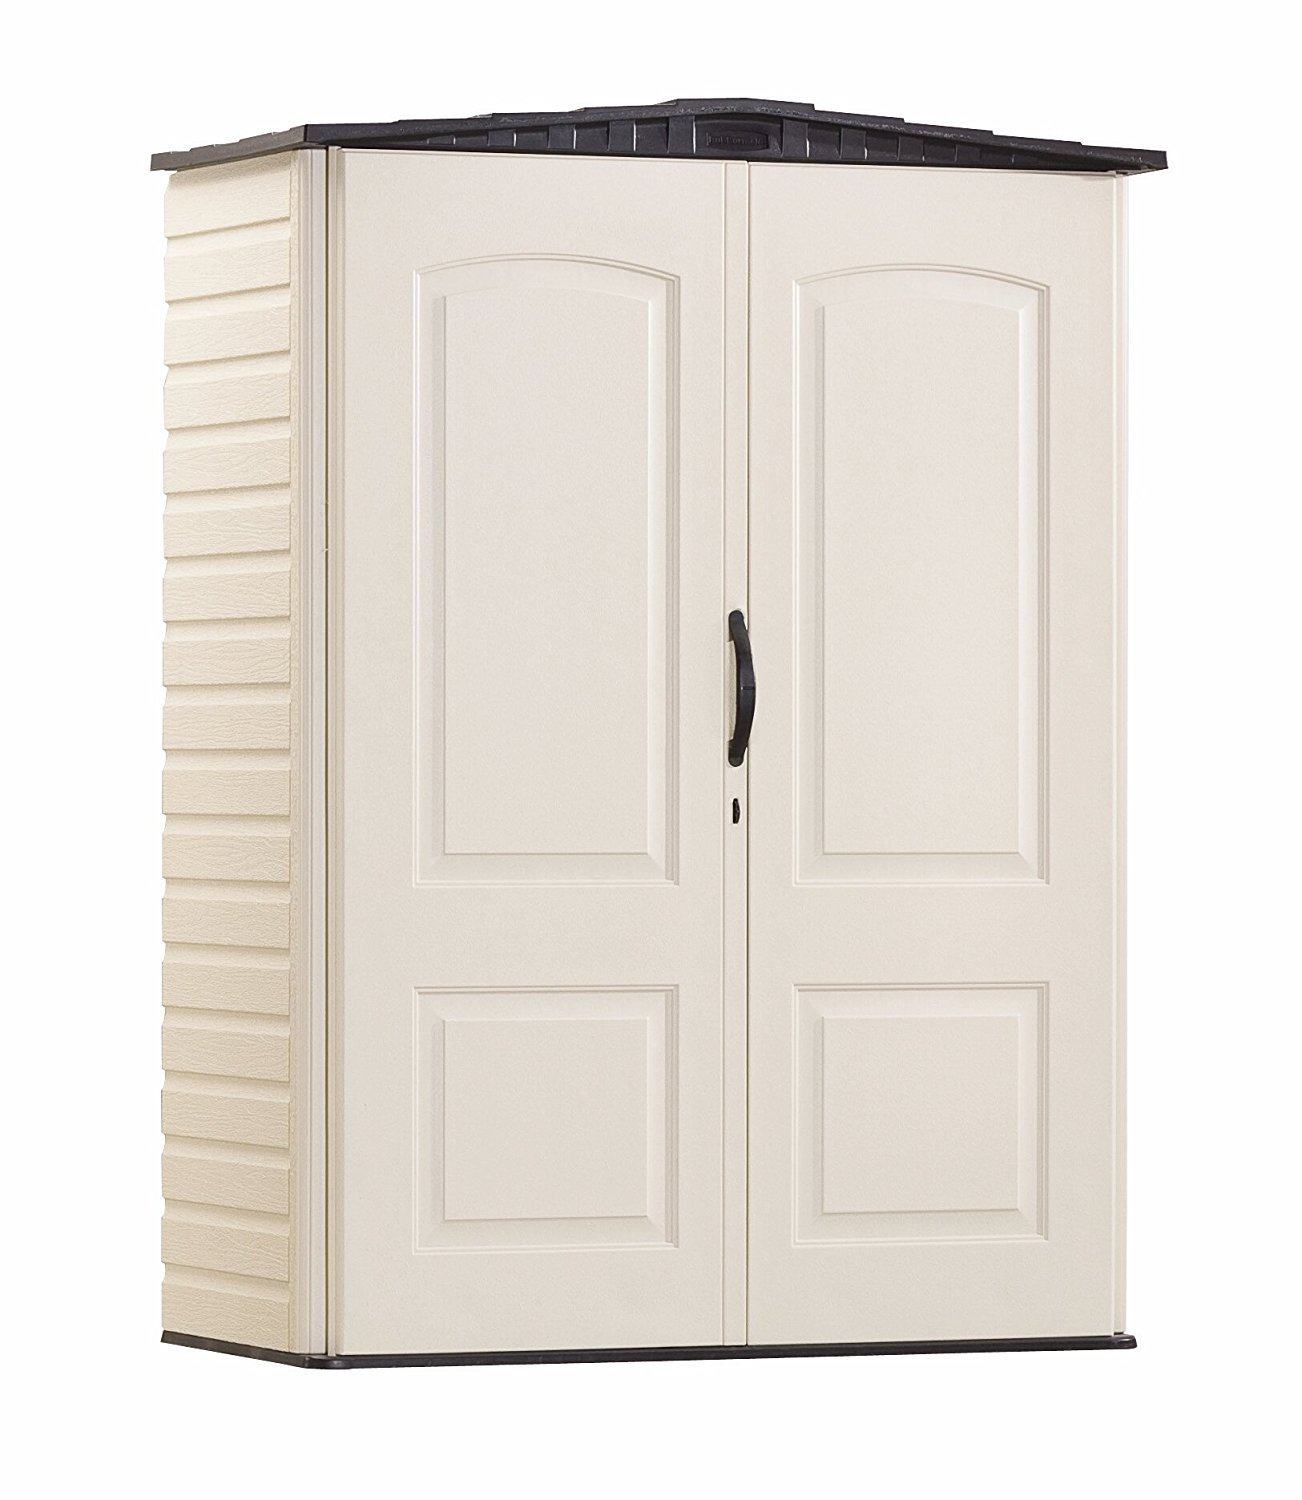 Plastic Outdoor Storage Sheds Home Furniture Design